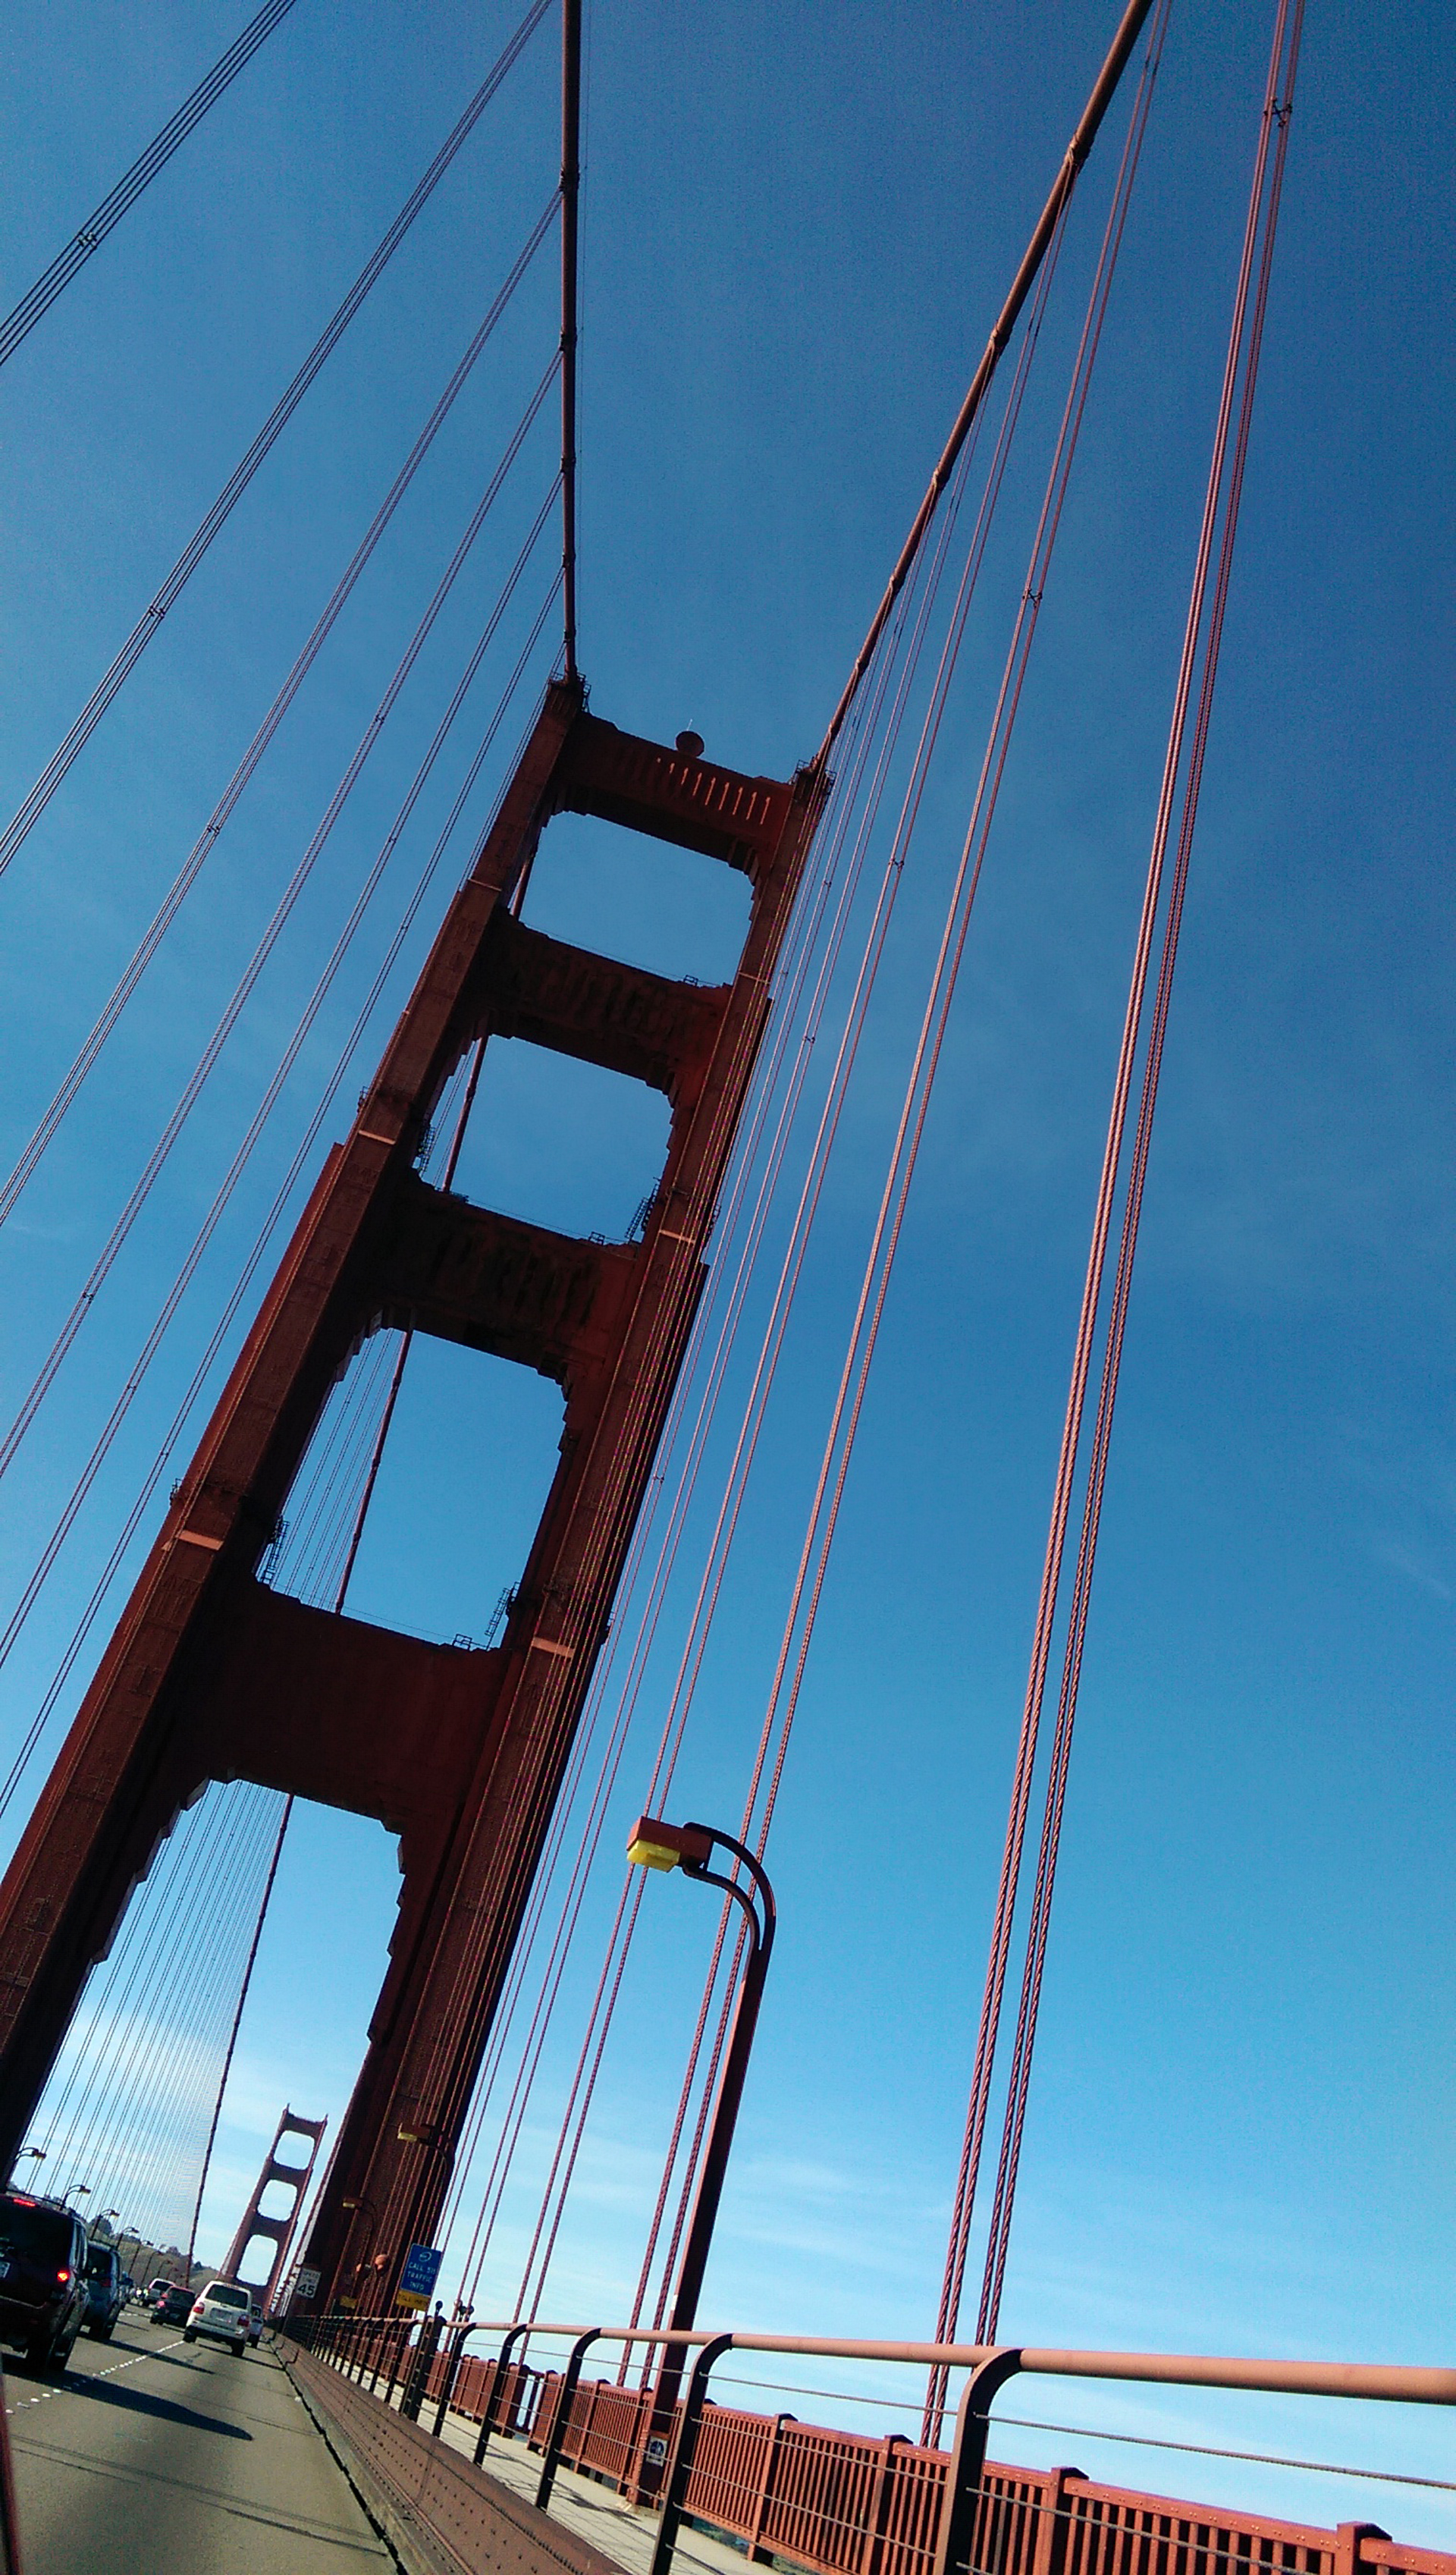 Sightseeing in San Francisco - Golden Gate Bridge